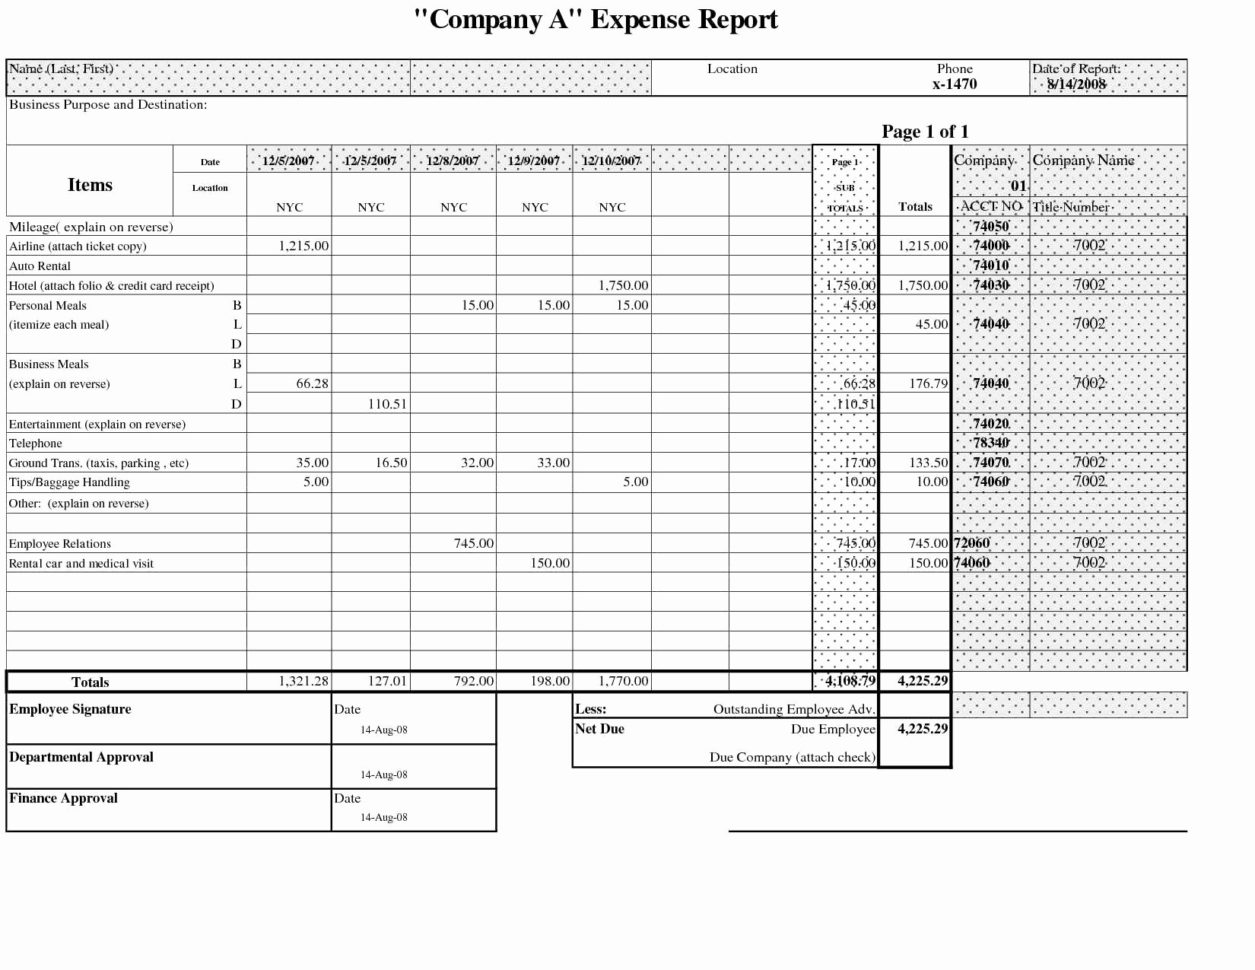 Business Expenses Spreadsheet Template Uk In Business Expenses Spreadsheet Elegant Business Expense Sheet In